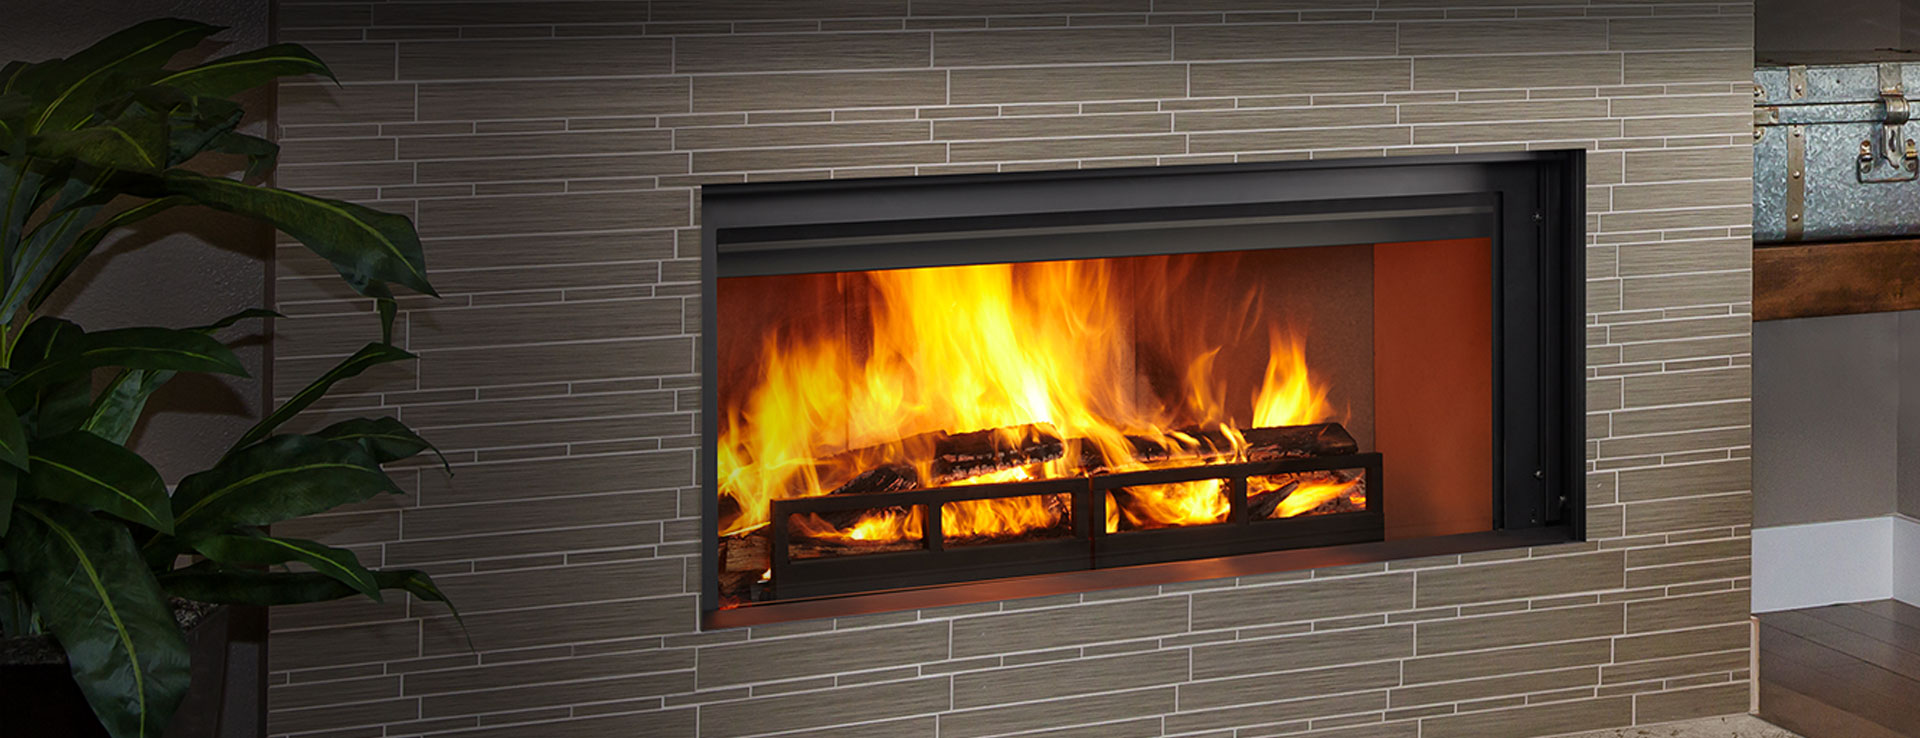 Simple Tips For Maintaining A Wood Burning Fireplace